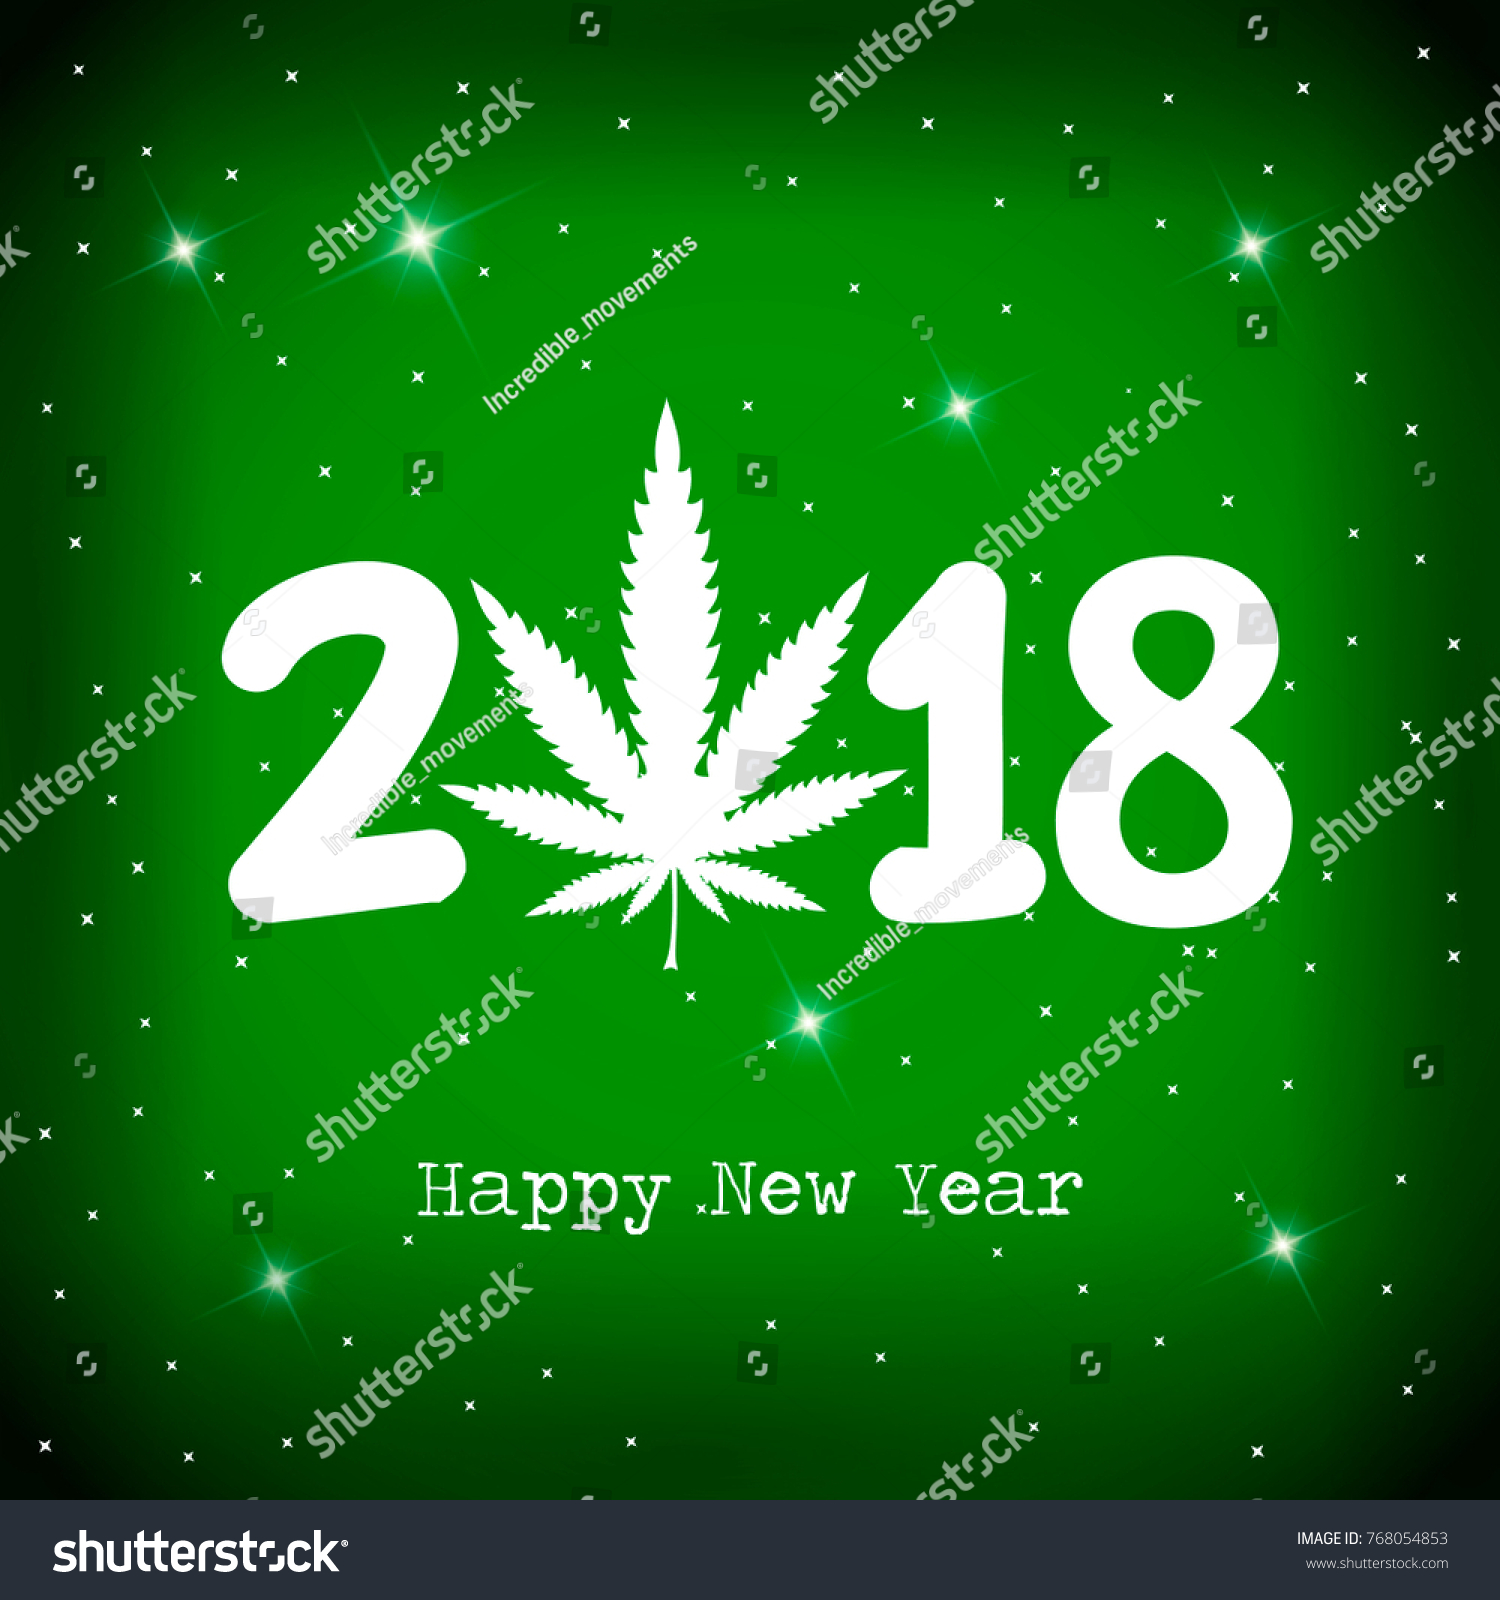 marijuana leaf and 2018 year on green background with white snowflakes happy new year card